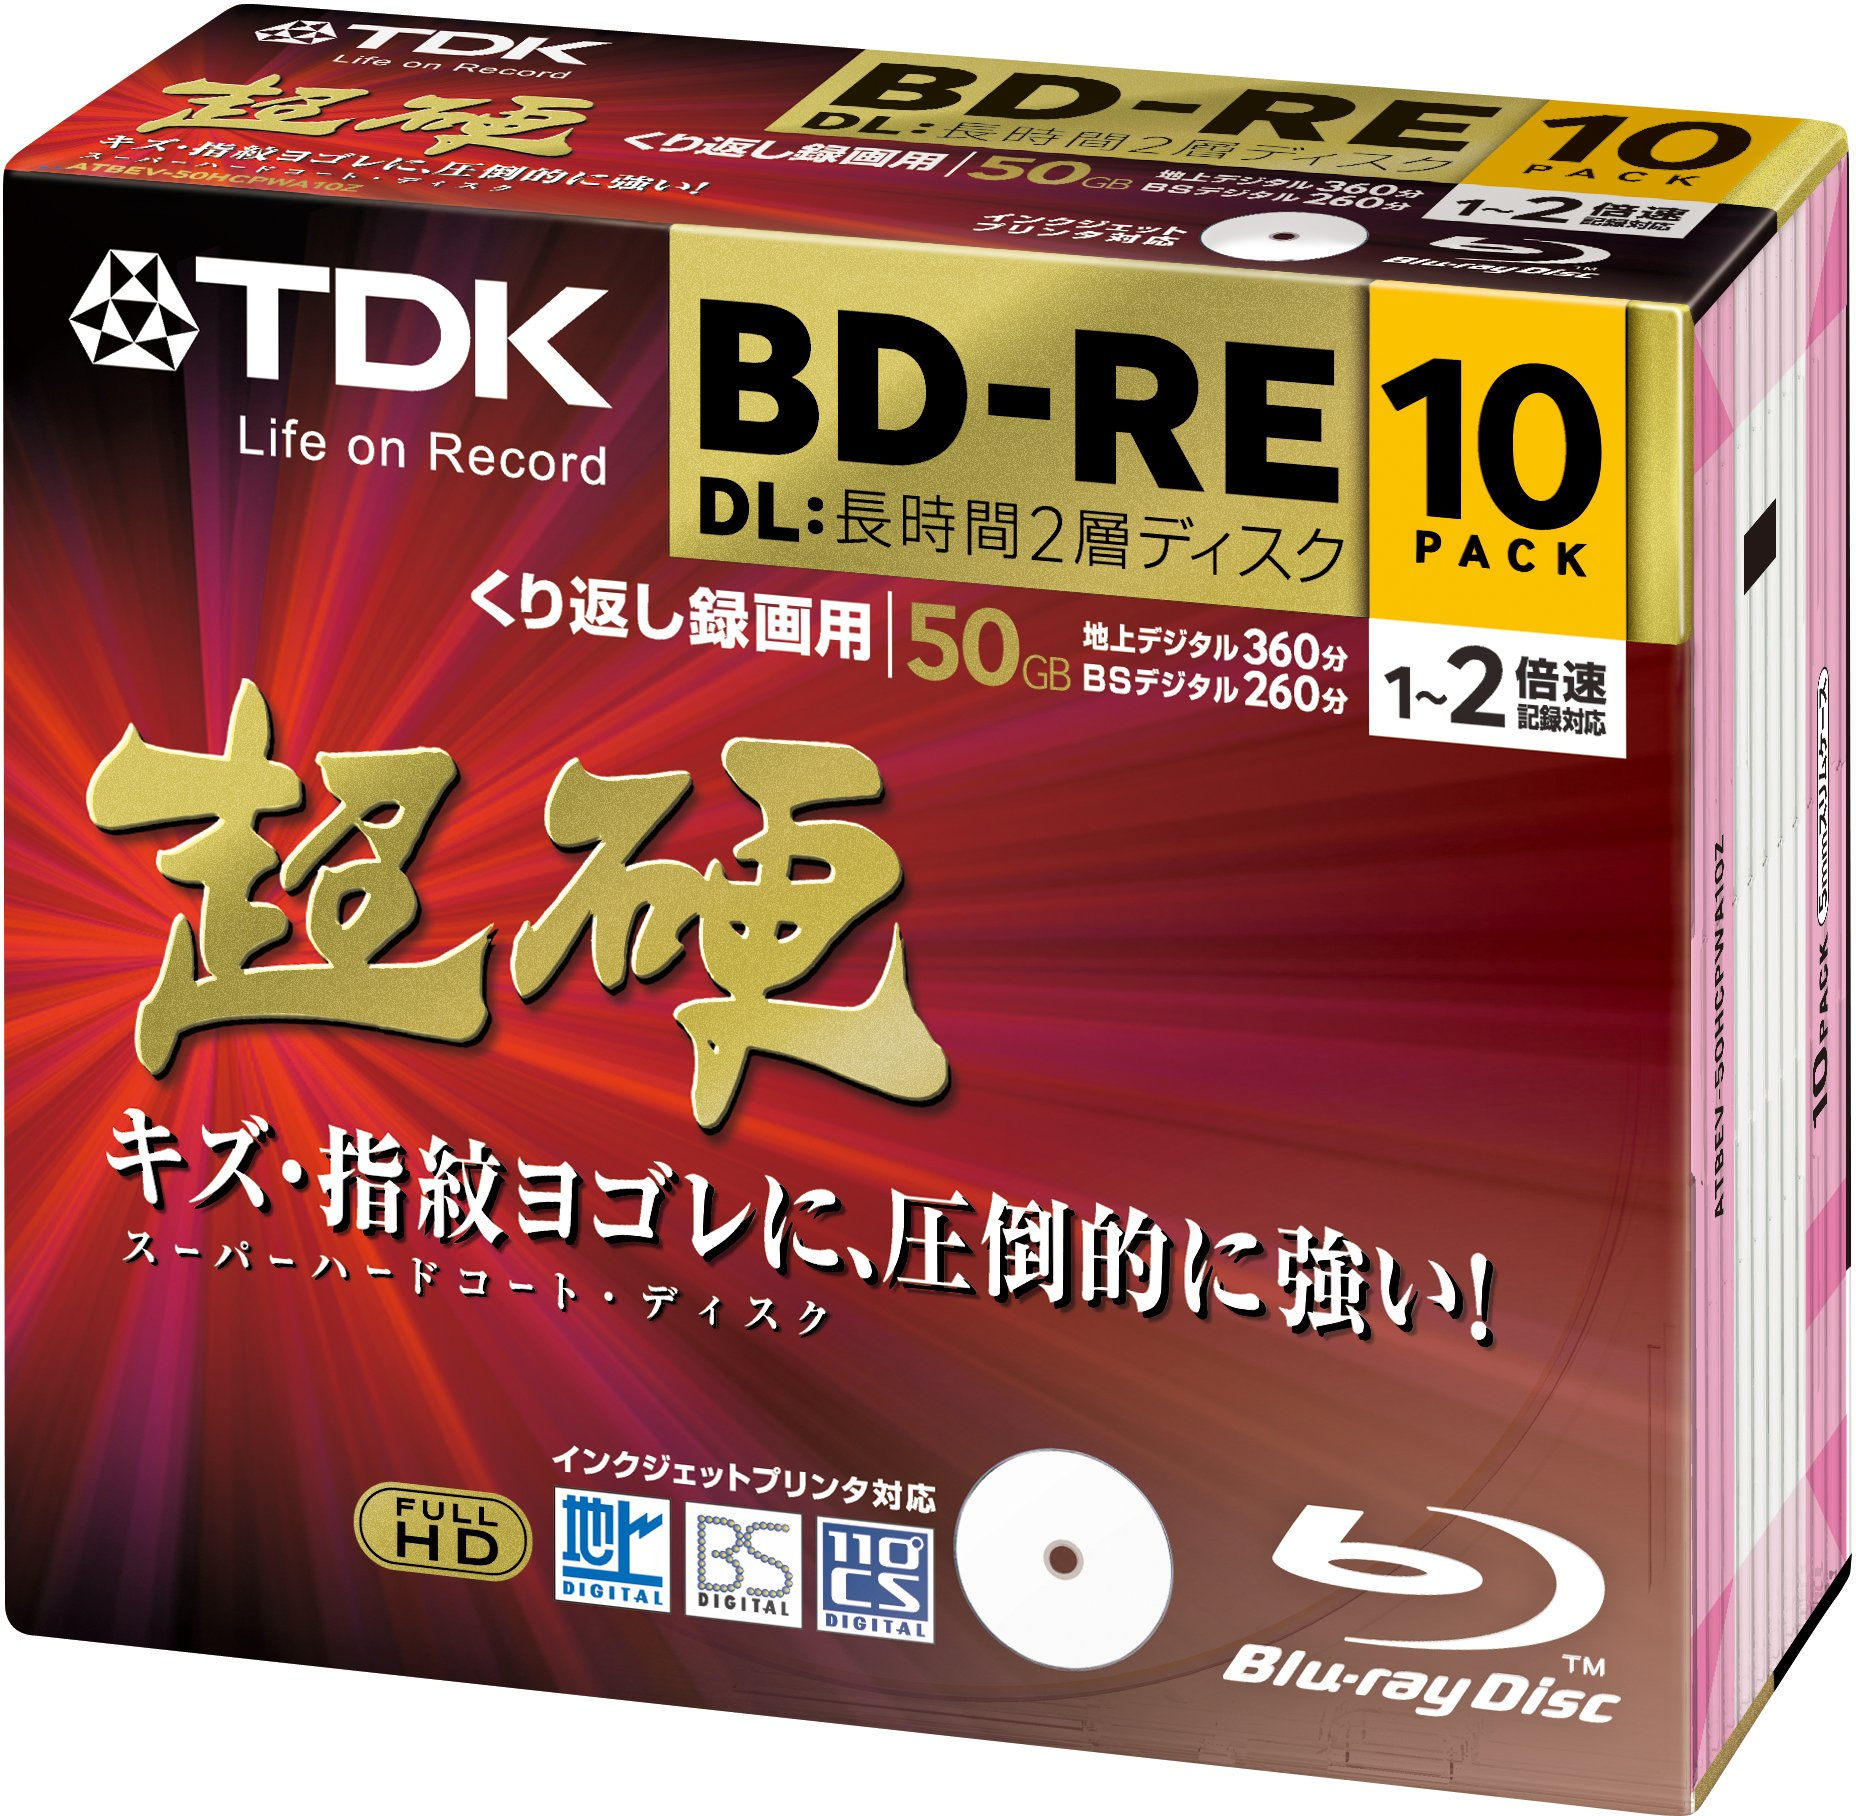 Blu-ray Disc for TDK Lor Recording One to 2x Super-硬 Series Bd-re Dl (Two-layer Disk of Long Time) 50gb Atbev-50hcpwa10z (Japan Import)